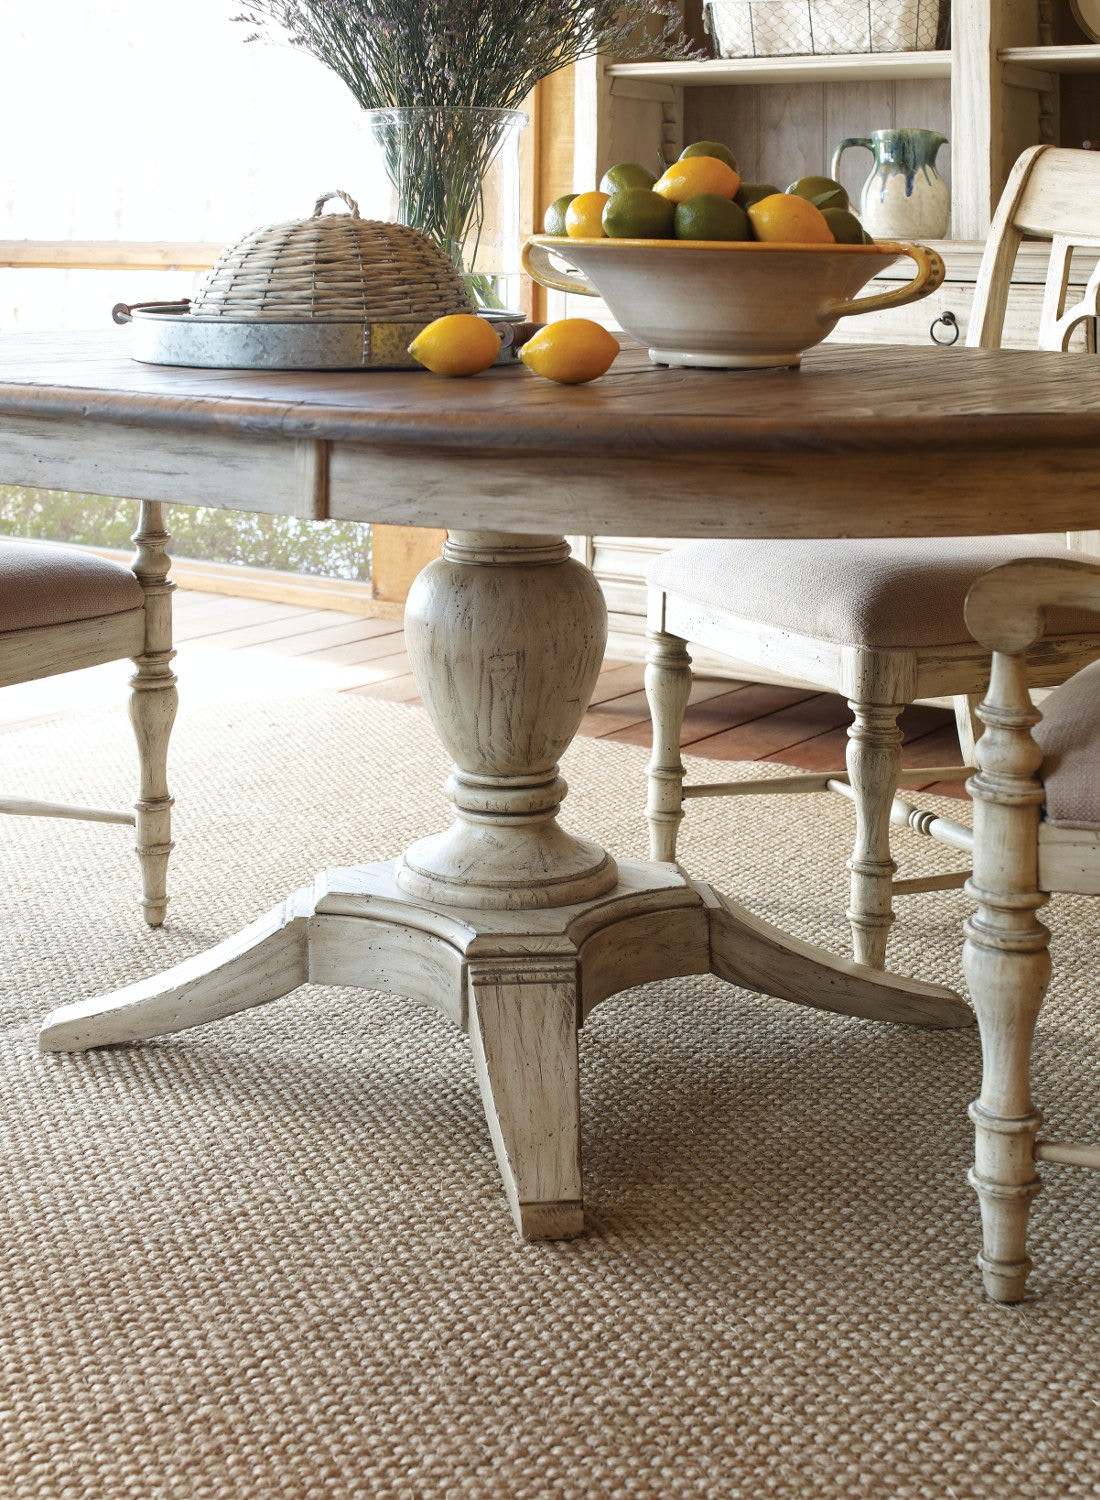 Weatherford Milford Round Dining Table KT:18648